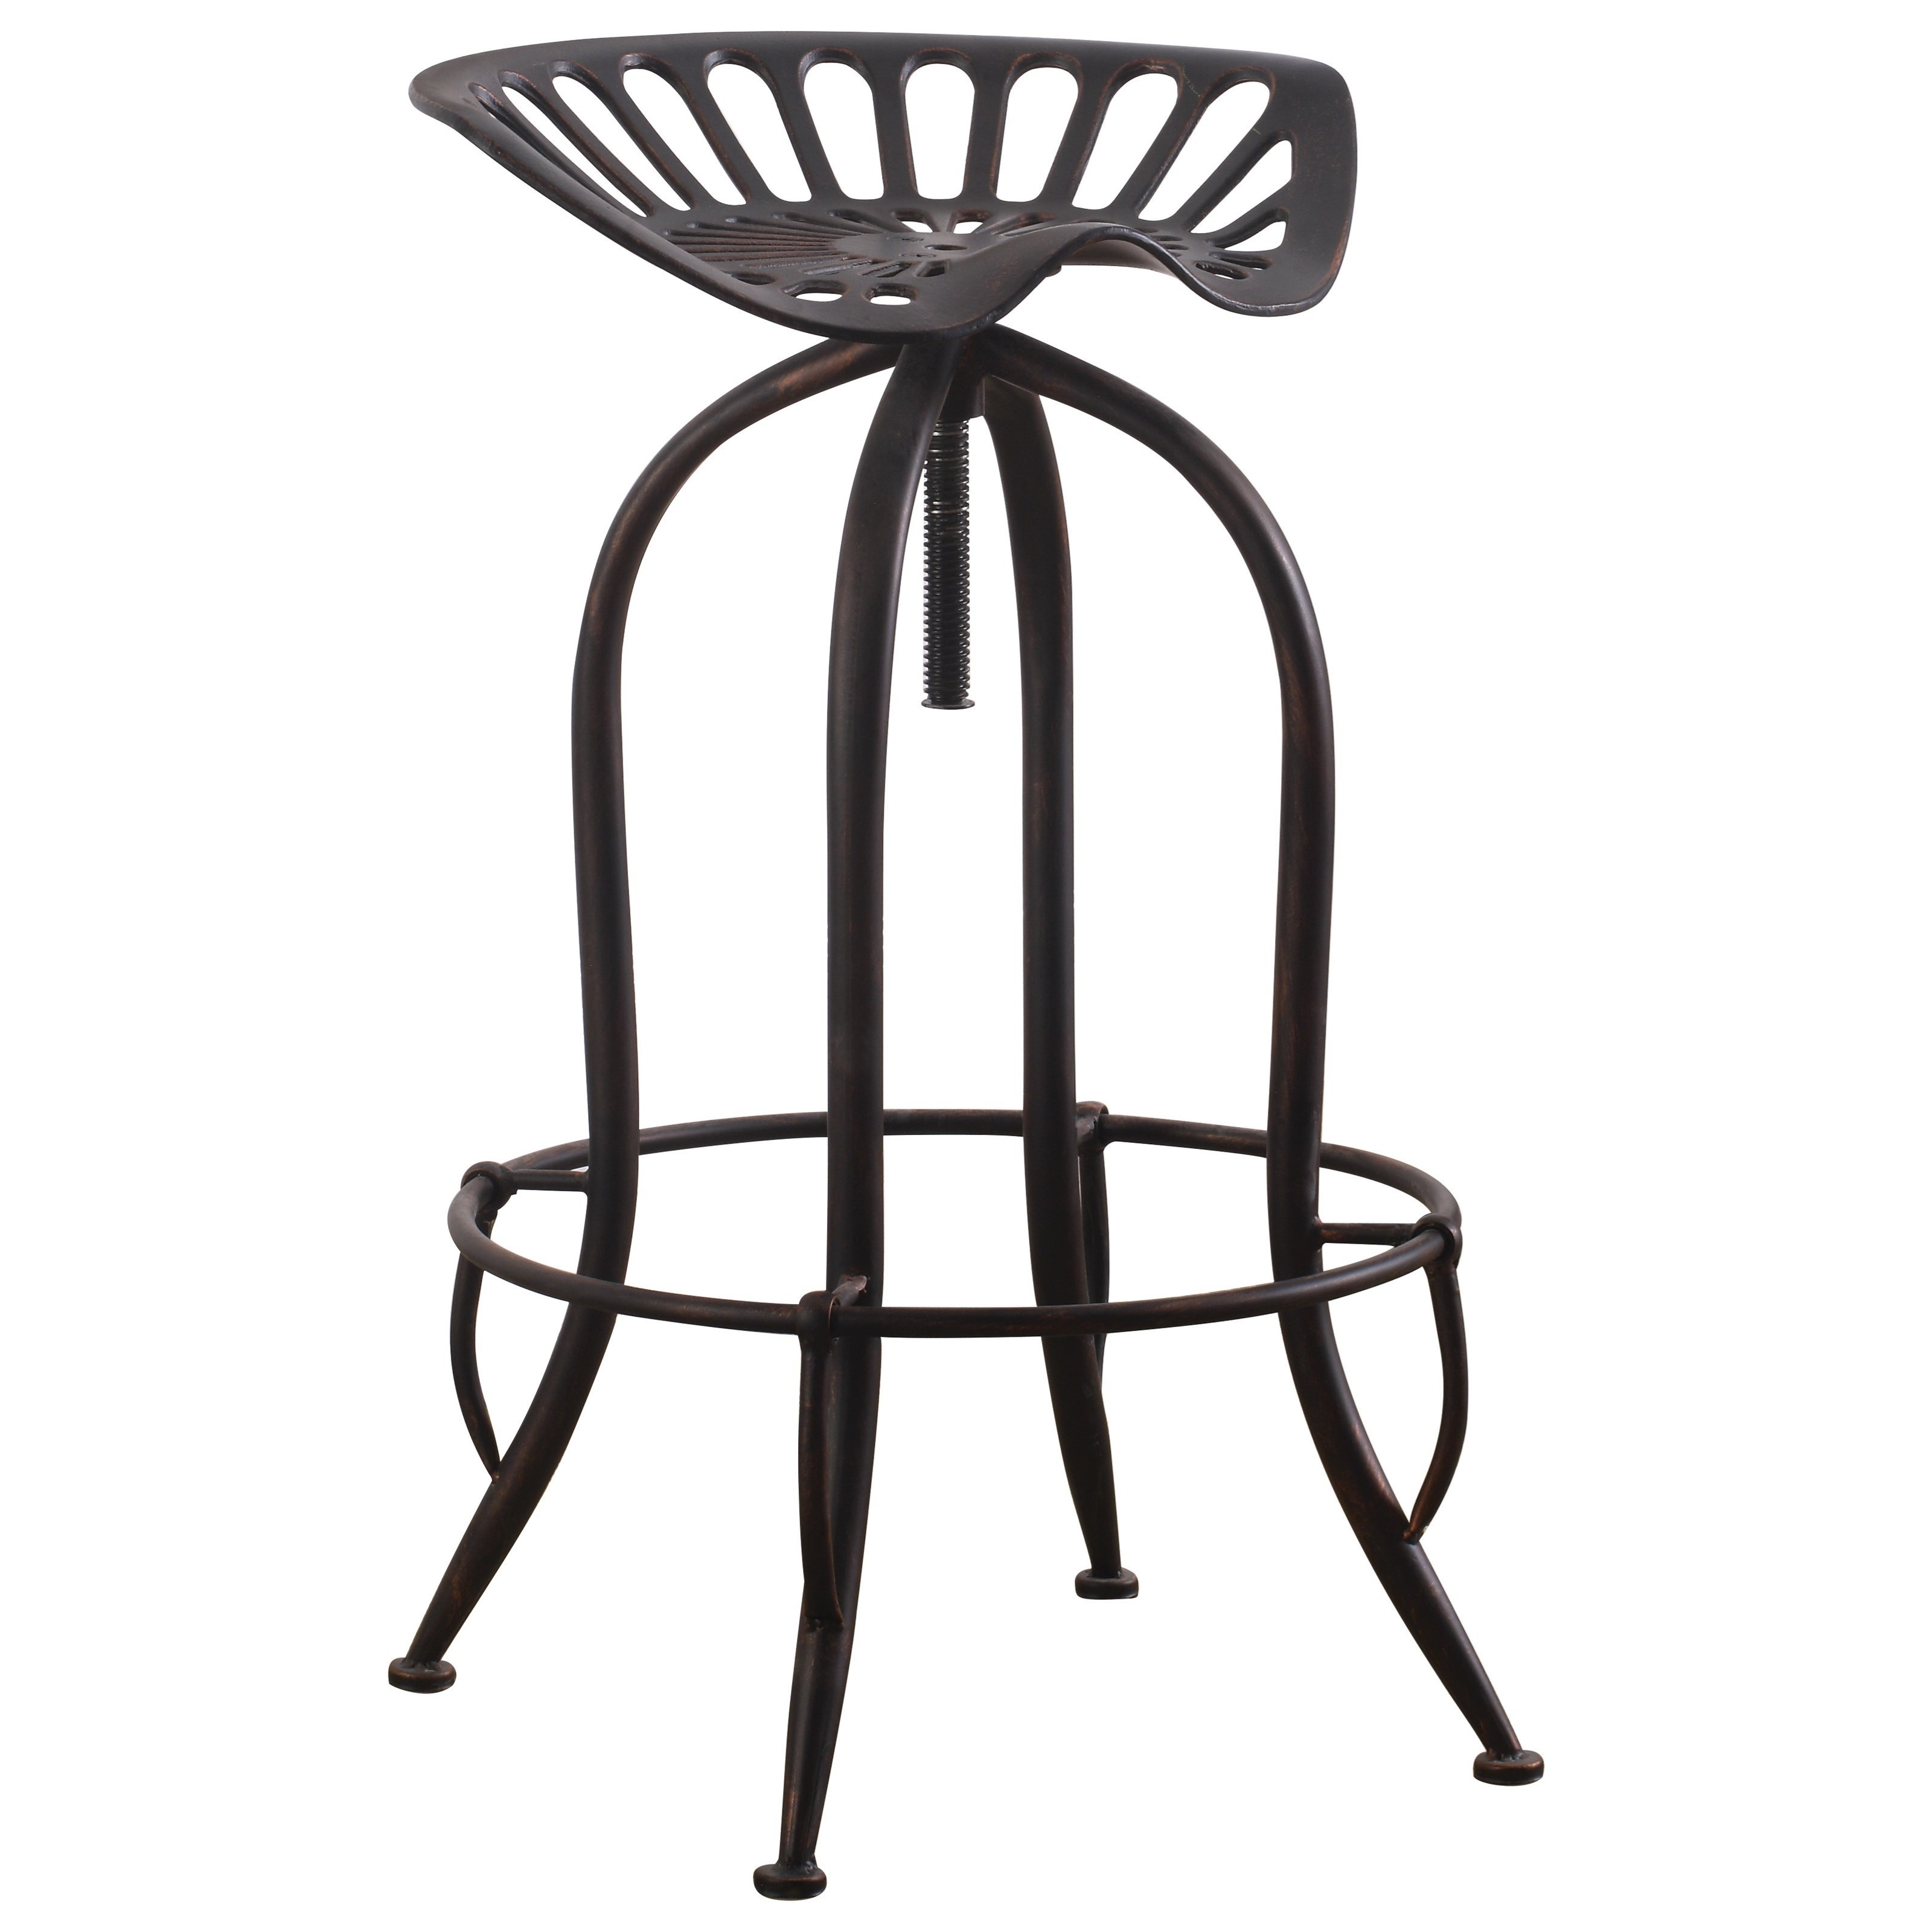 Coaster Dining Chairs and Bar Stools Bar Stool - Item Number: 104949